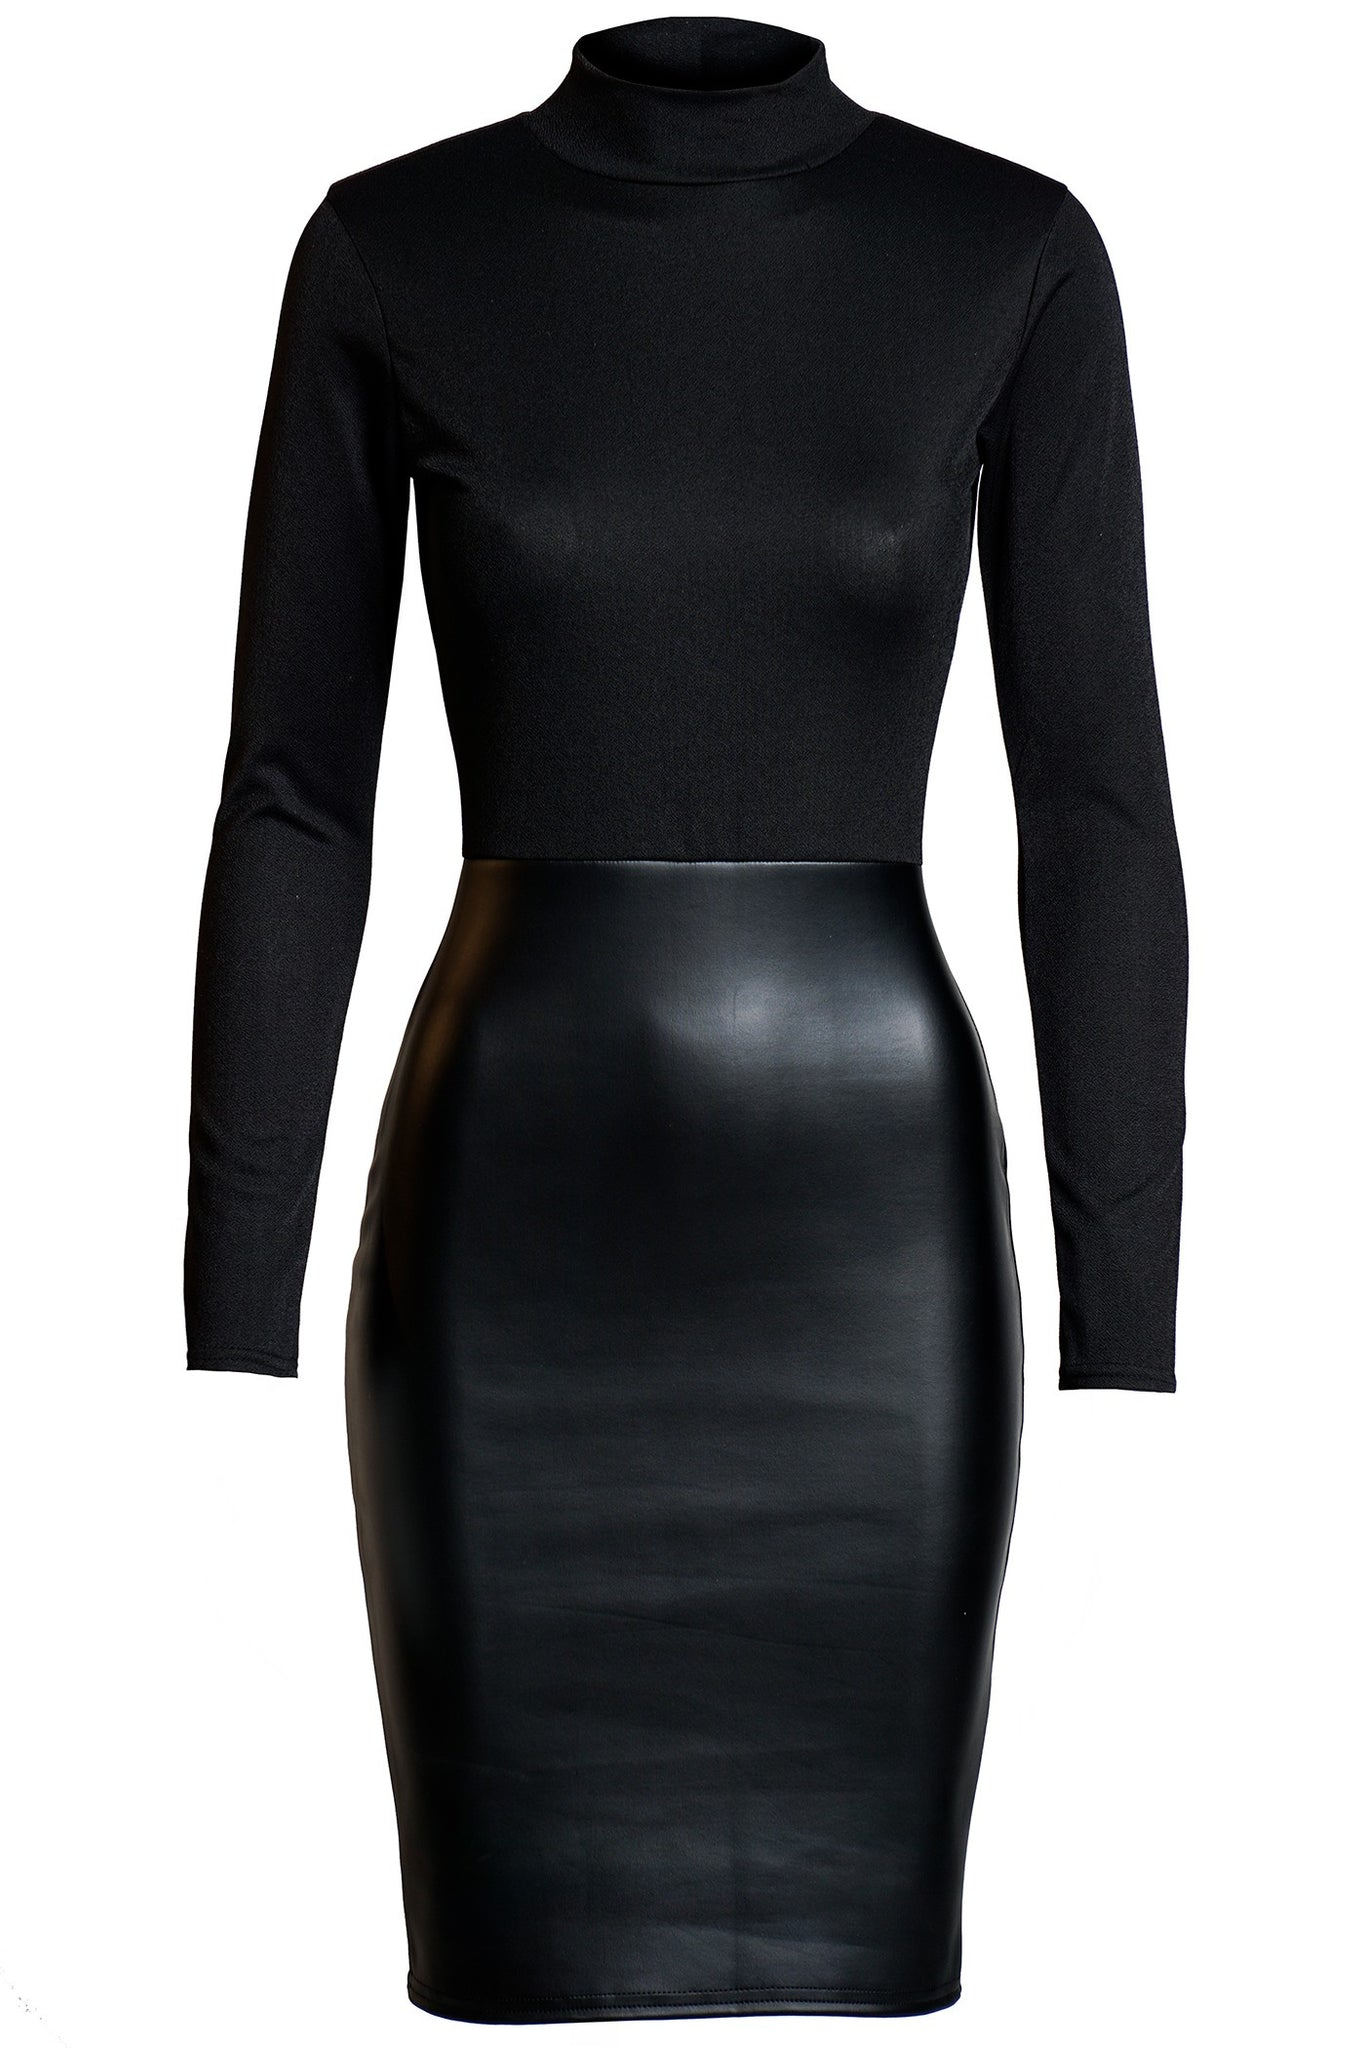 Meghan Markle Celebrity Inspired Black Dress